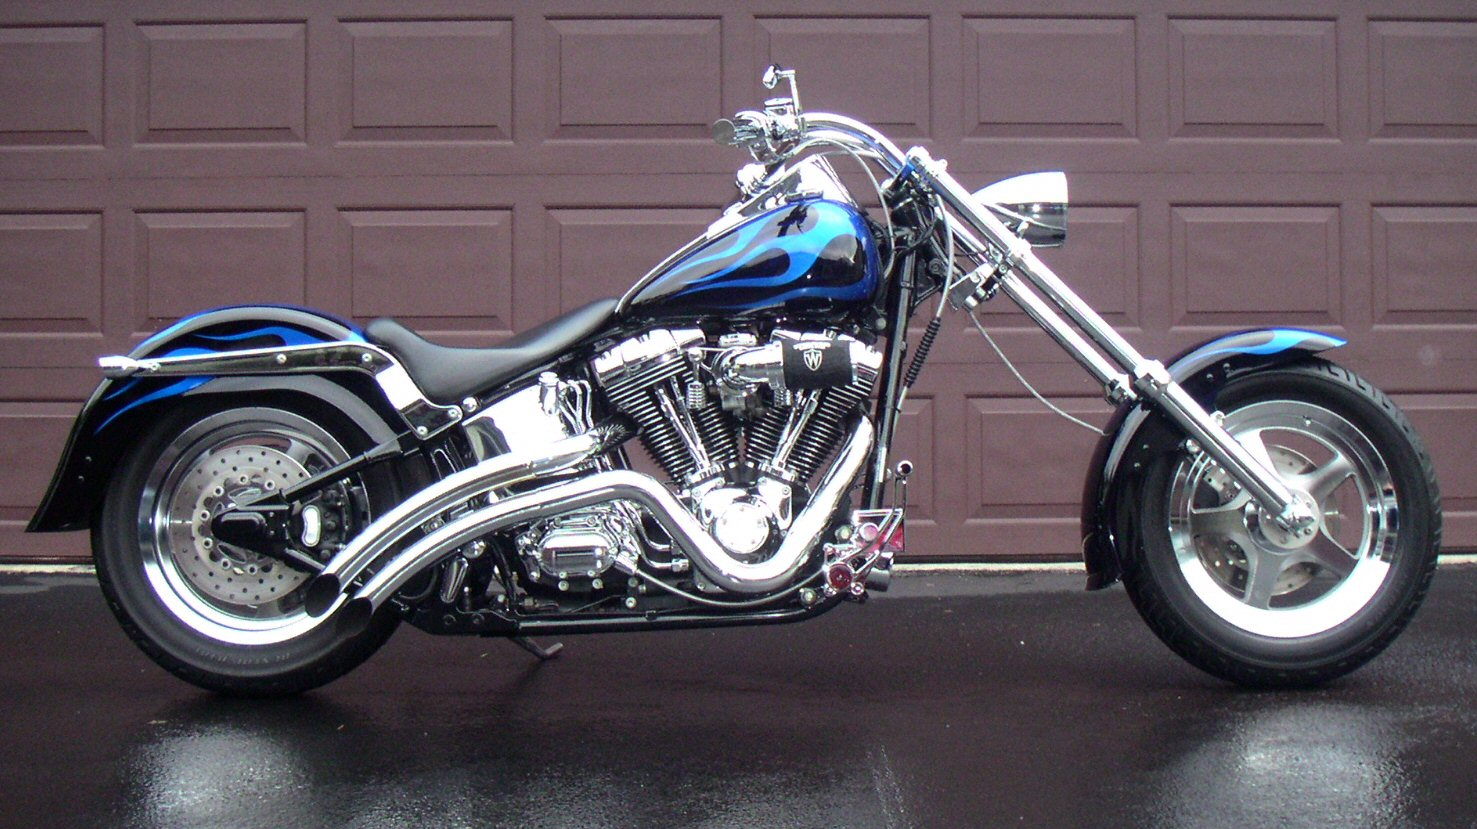 harley davidson chopper fatboy free hd wallpaper. Black Bedroom Furniture Sets. Home Design Ideas